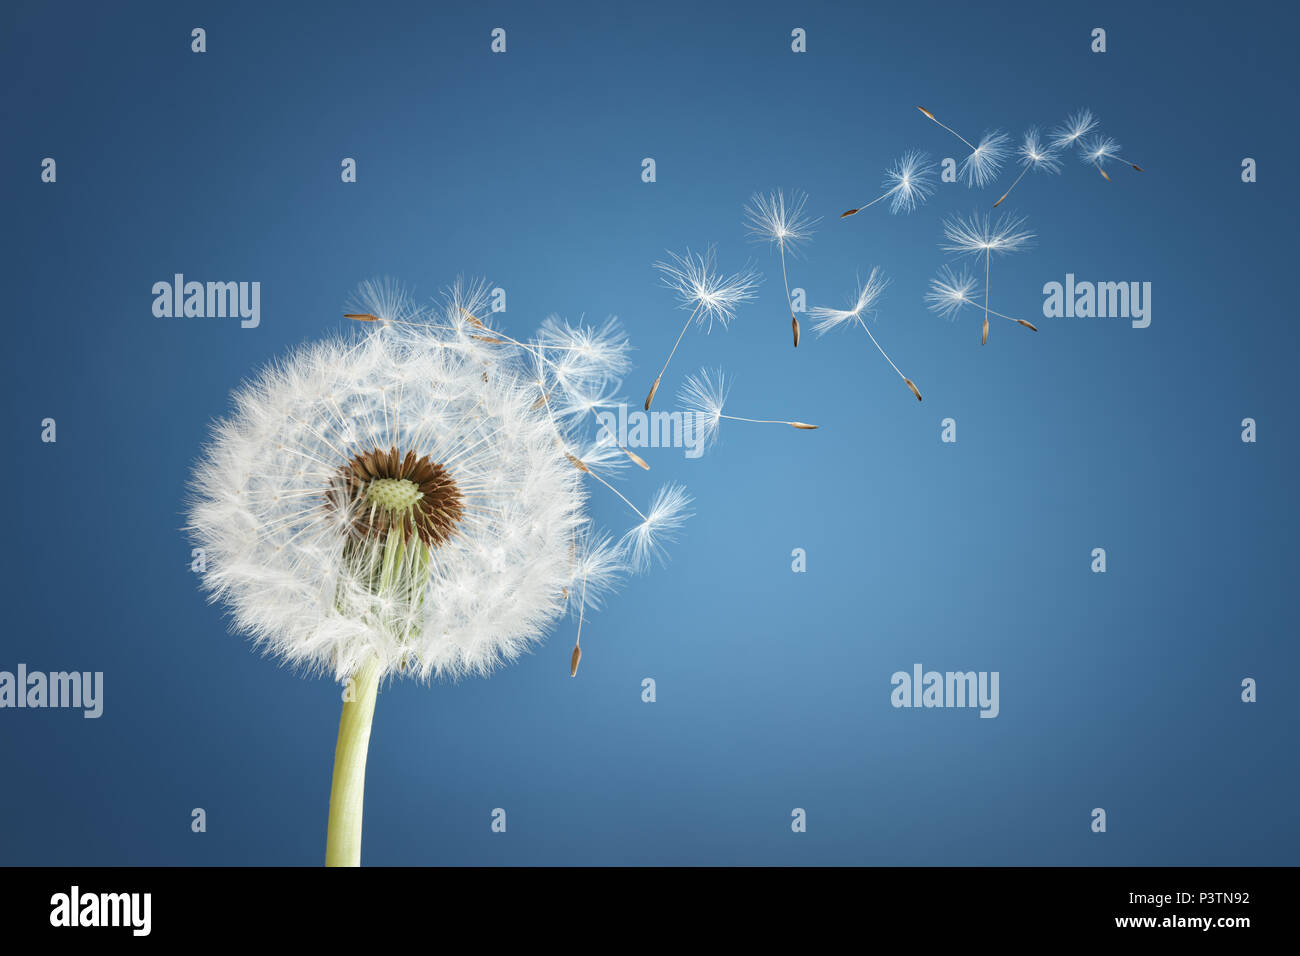 Dandelion with seeds blowing away in the wind across a clear blue sky with copy space - Stock Image